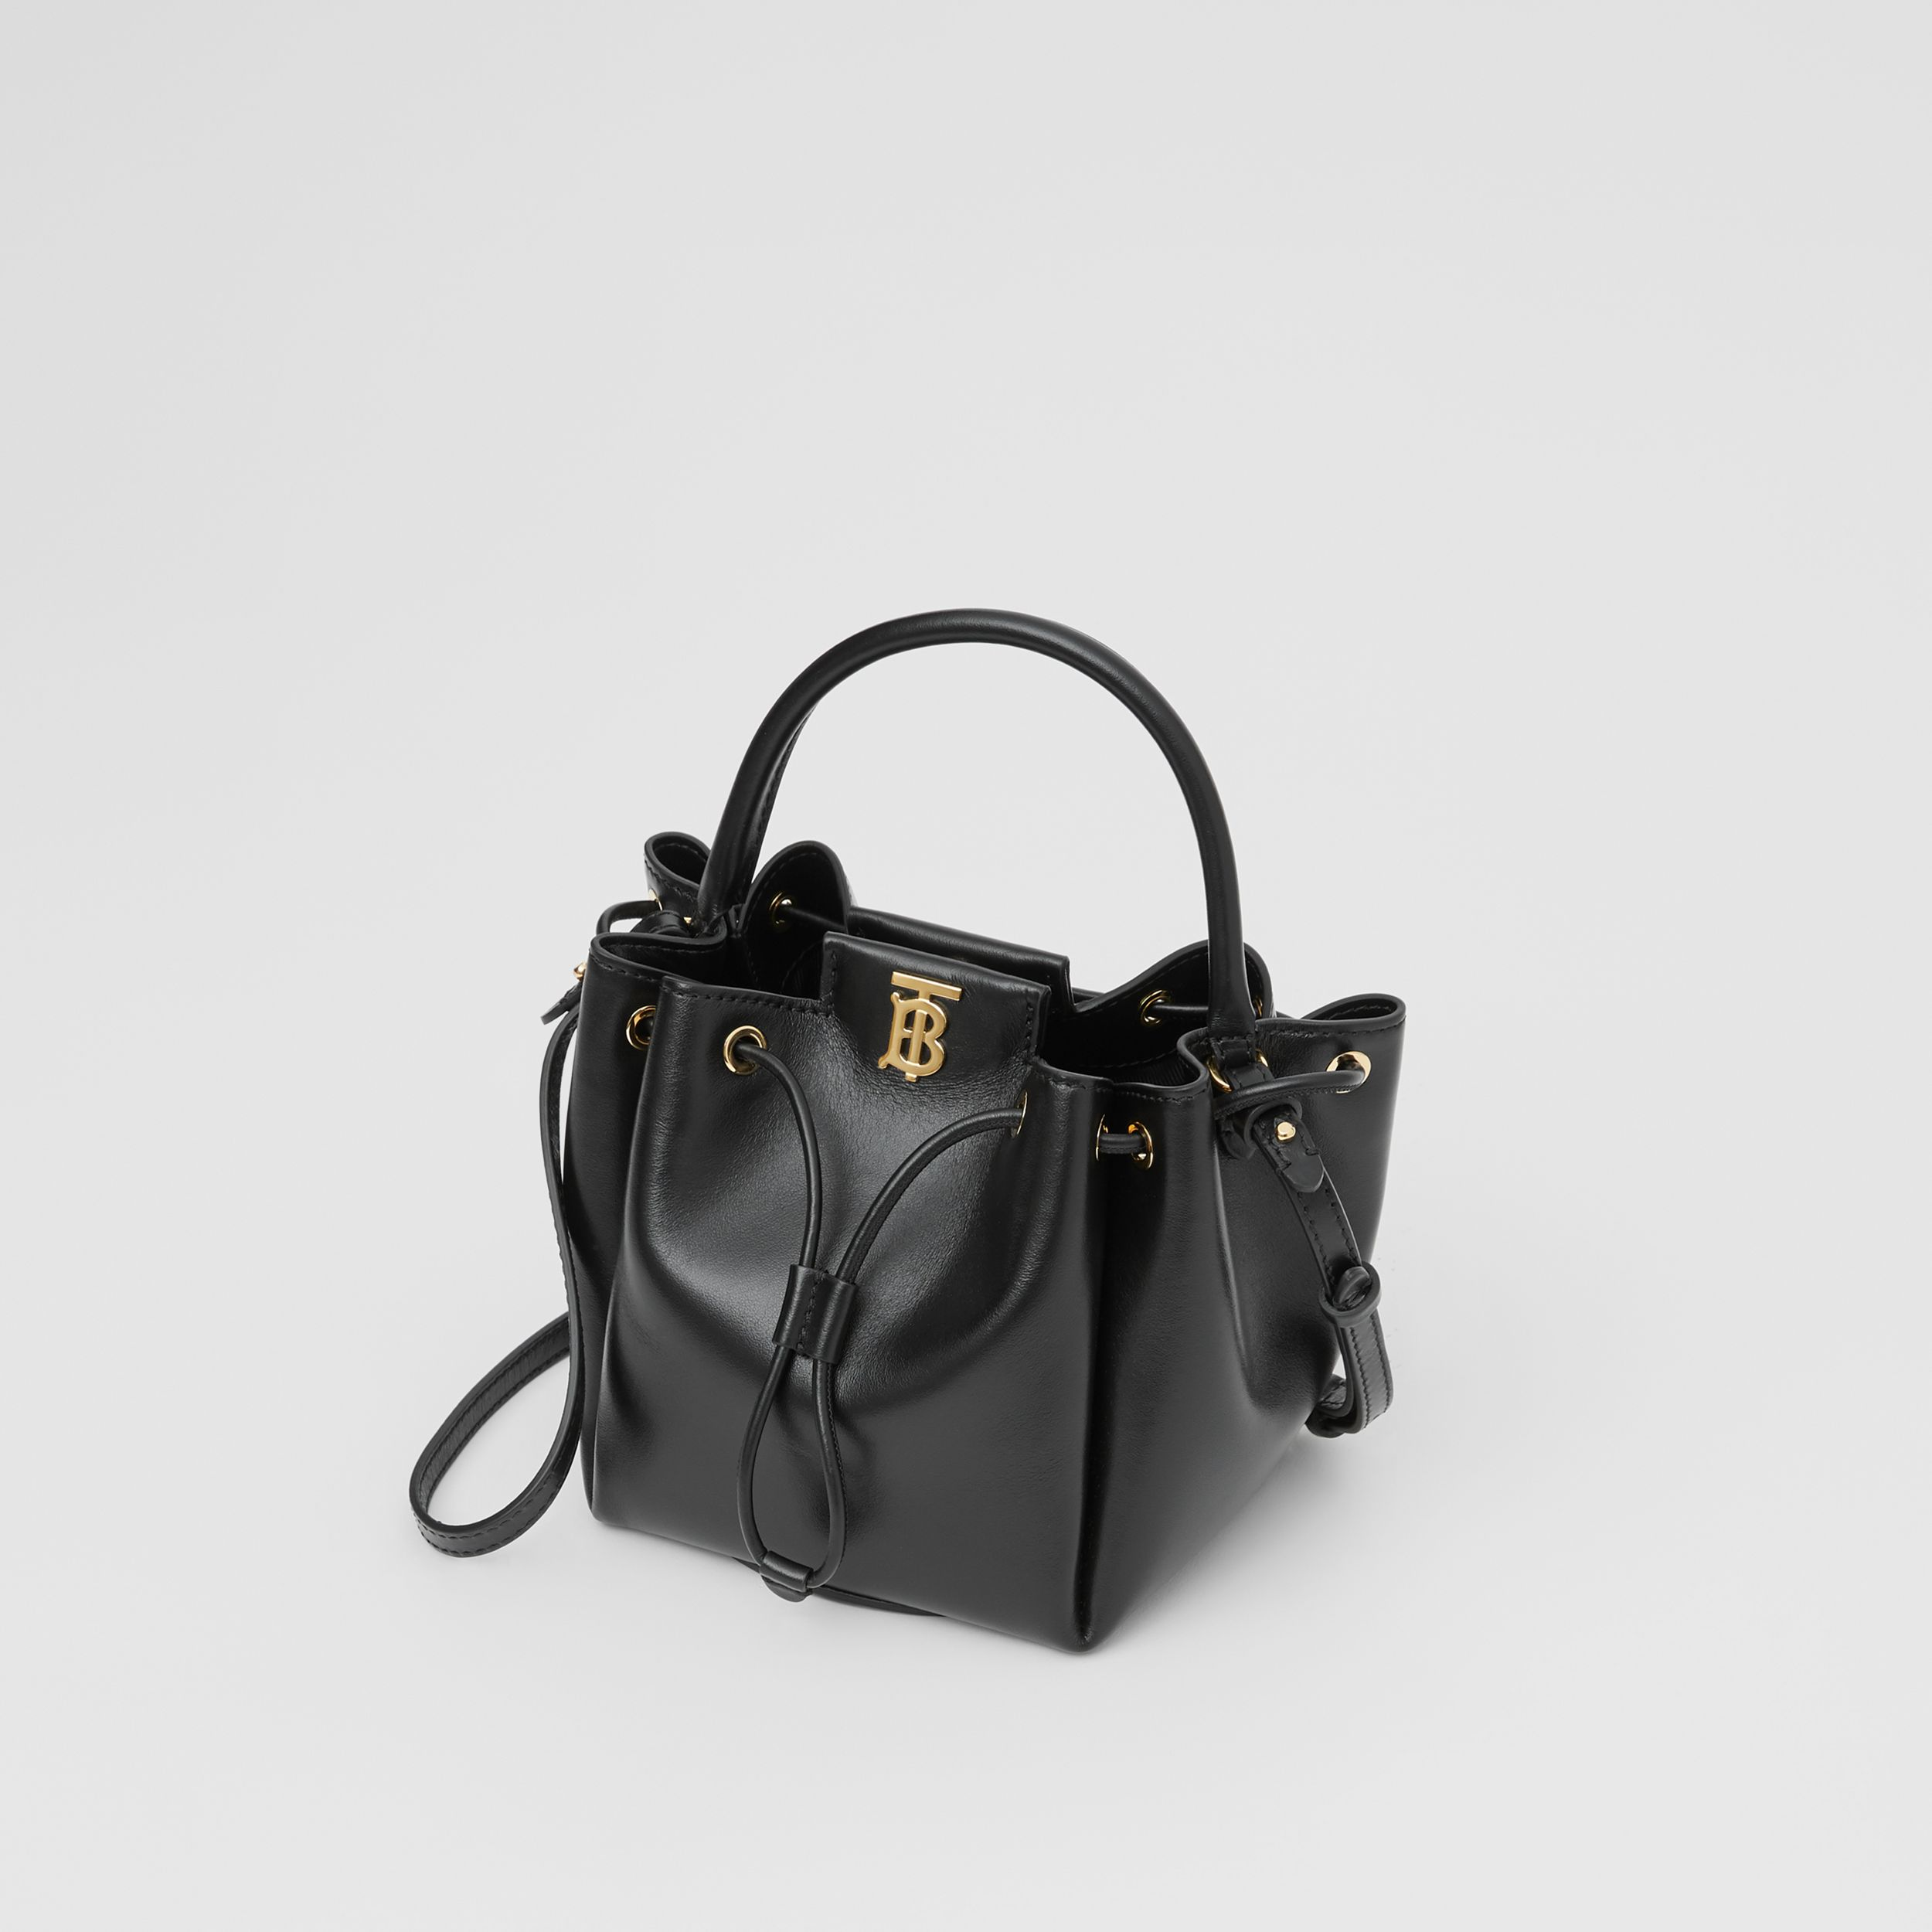 Monogram Motif Leather Bucket Bag in Black - Women | Burberry Canada - 4